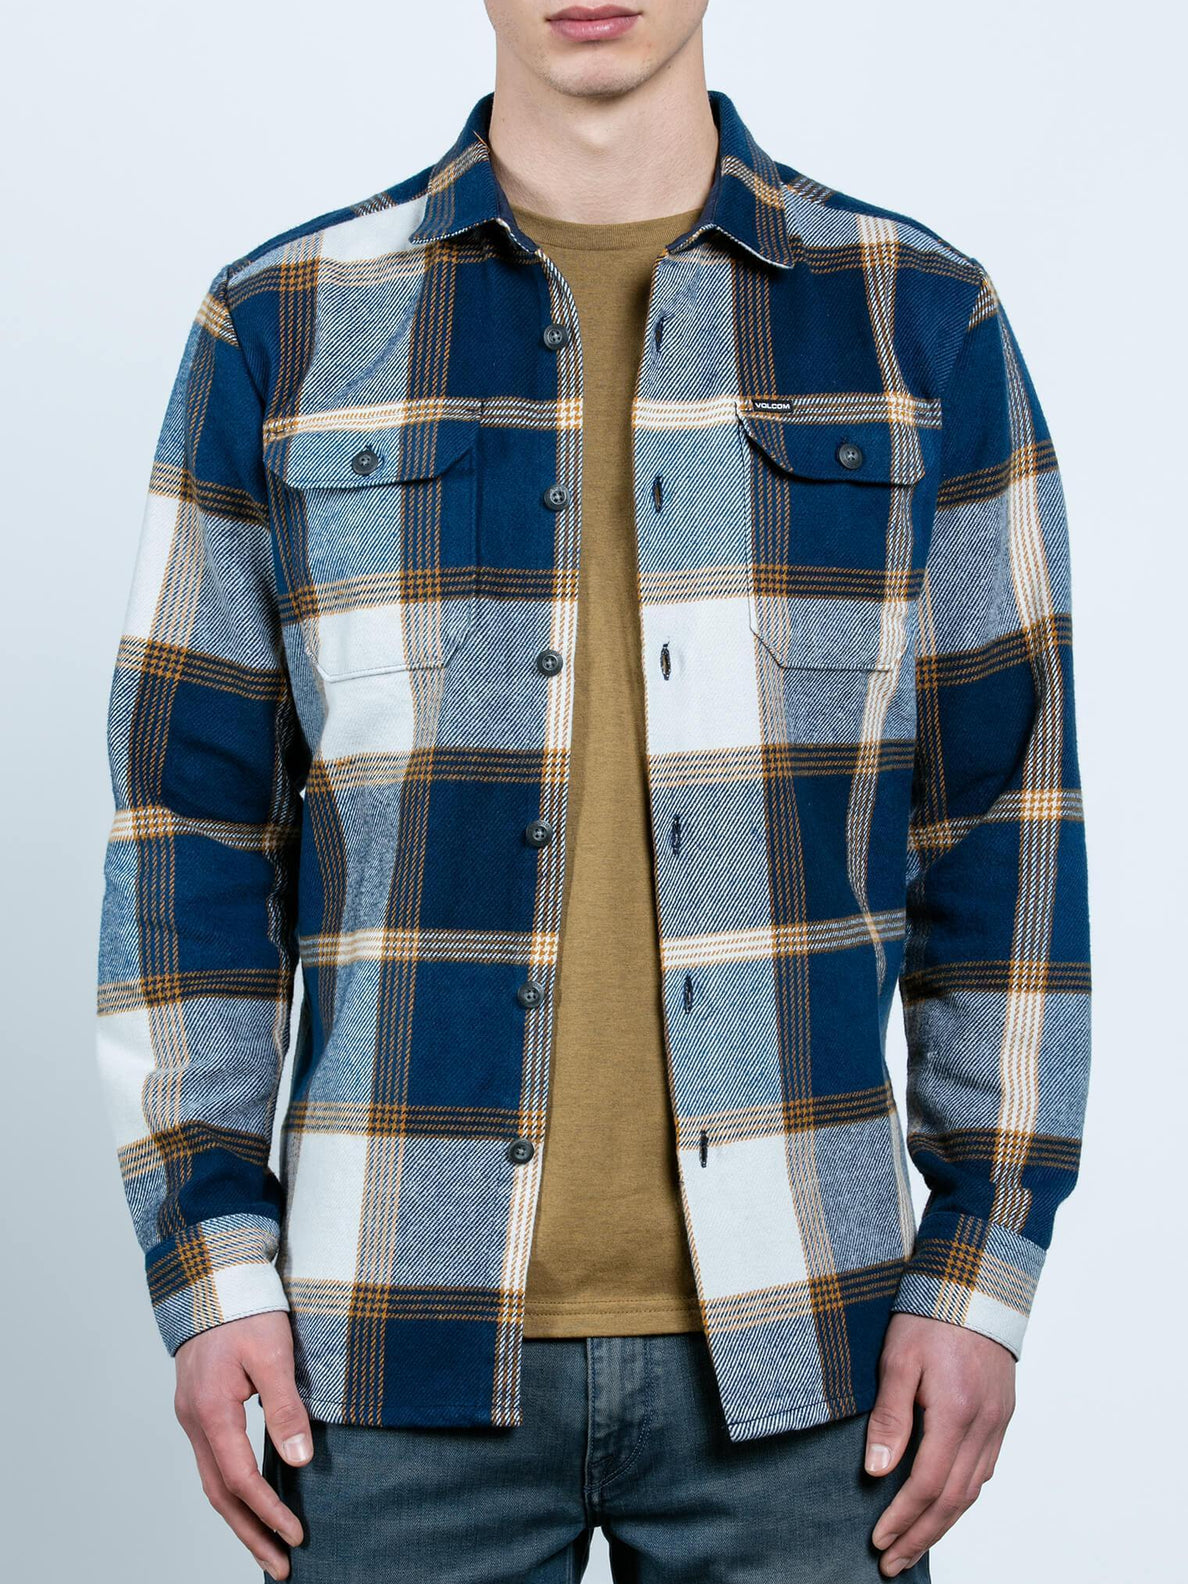 Heavy Daze Long Sleeve Shirt - Indigo